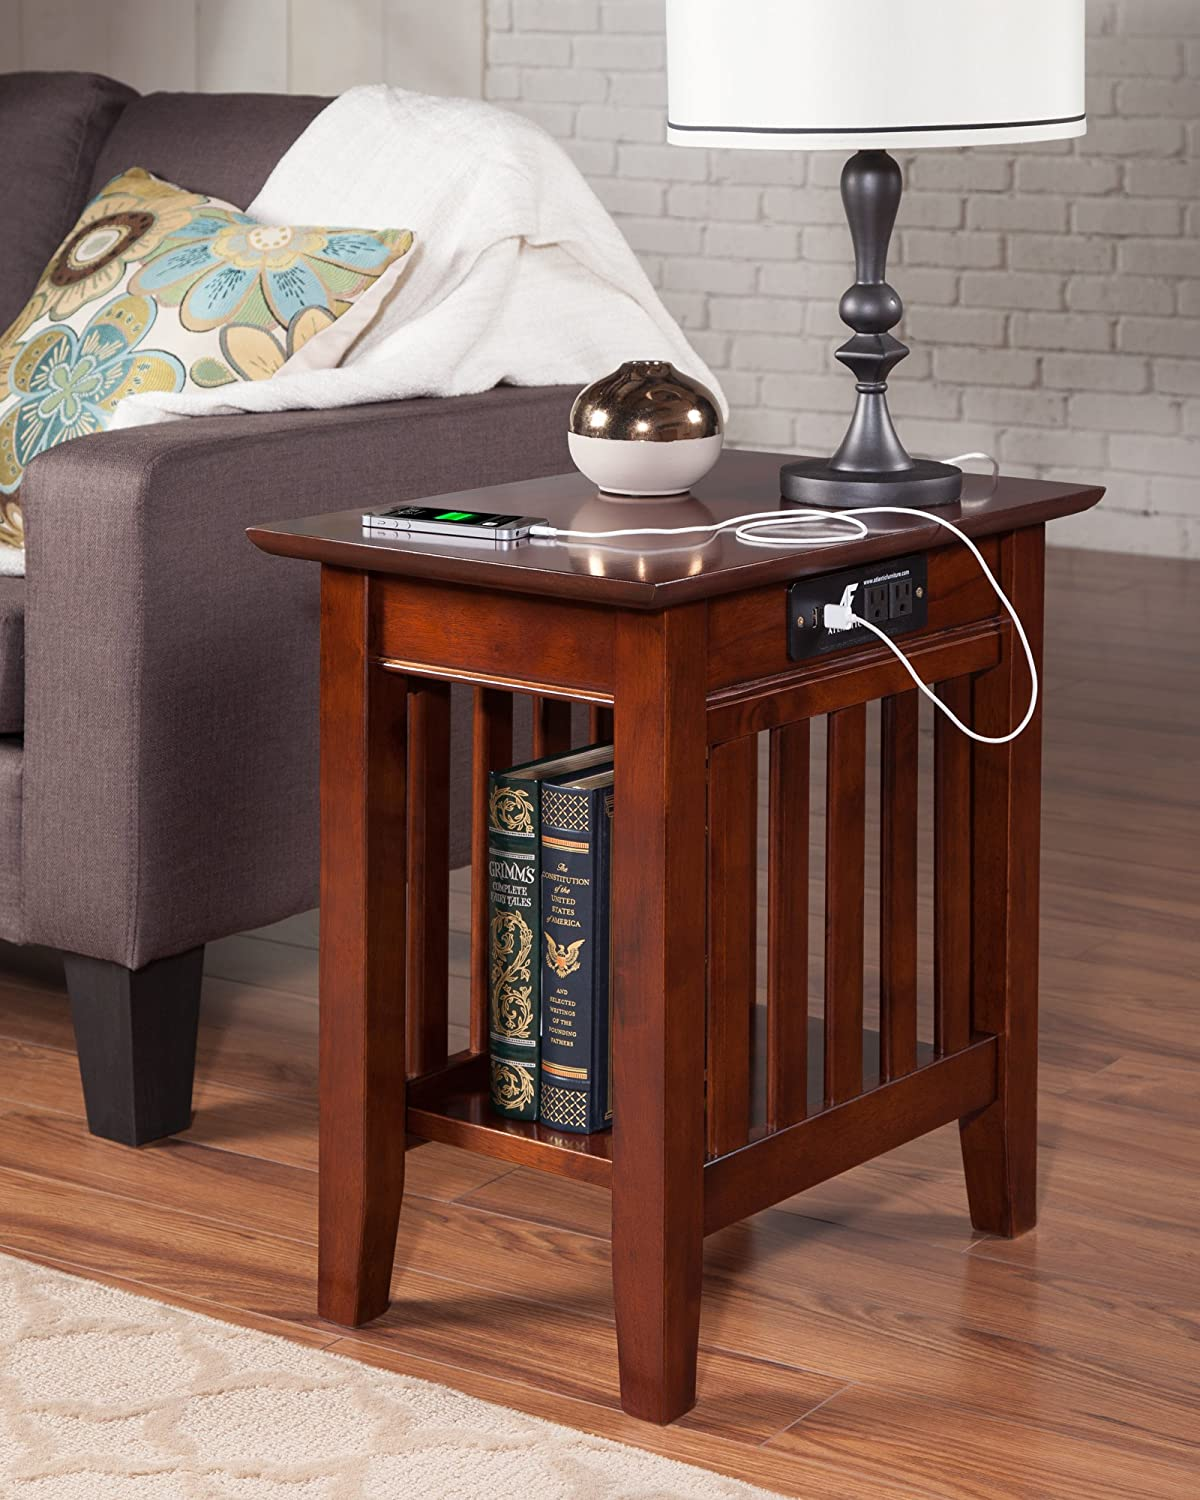 Amazon com atlantic furniture ah13214 mission side table rubber wood walnut kitchen dining